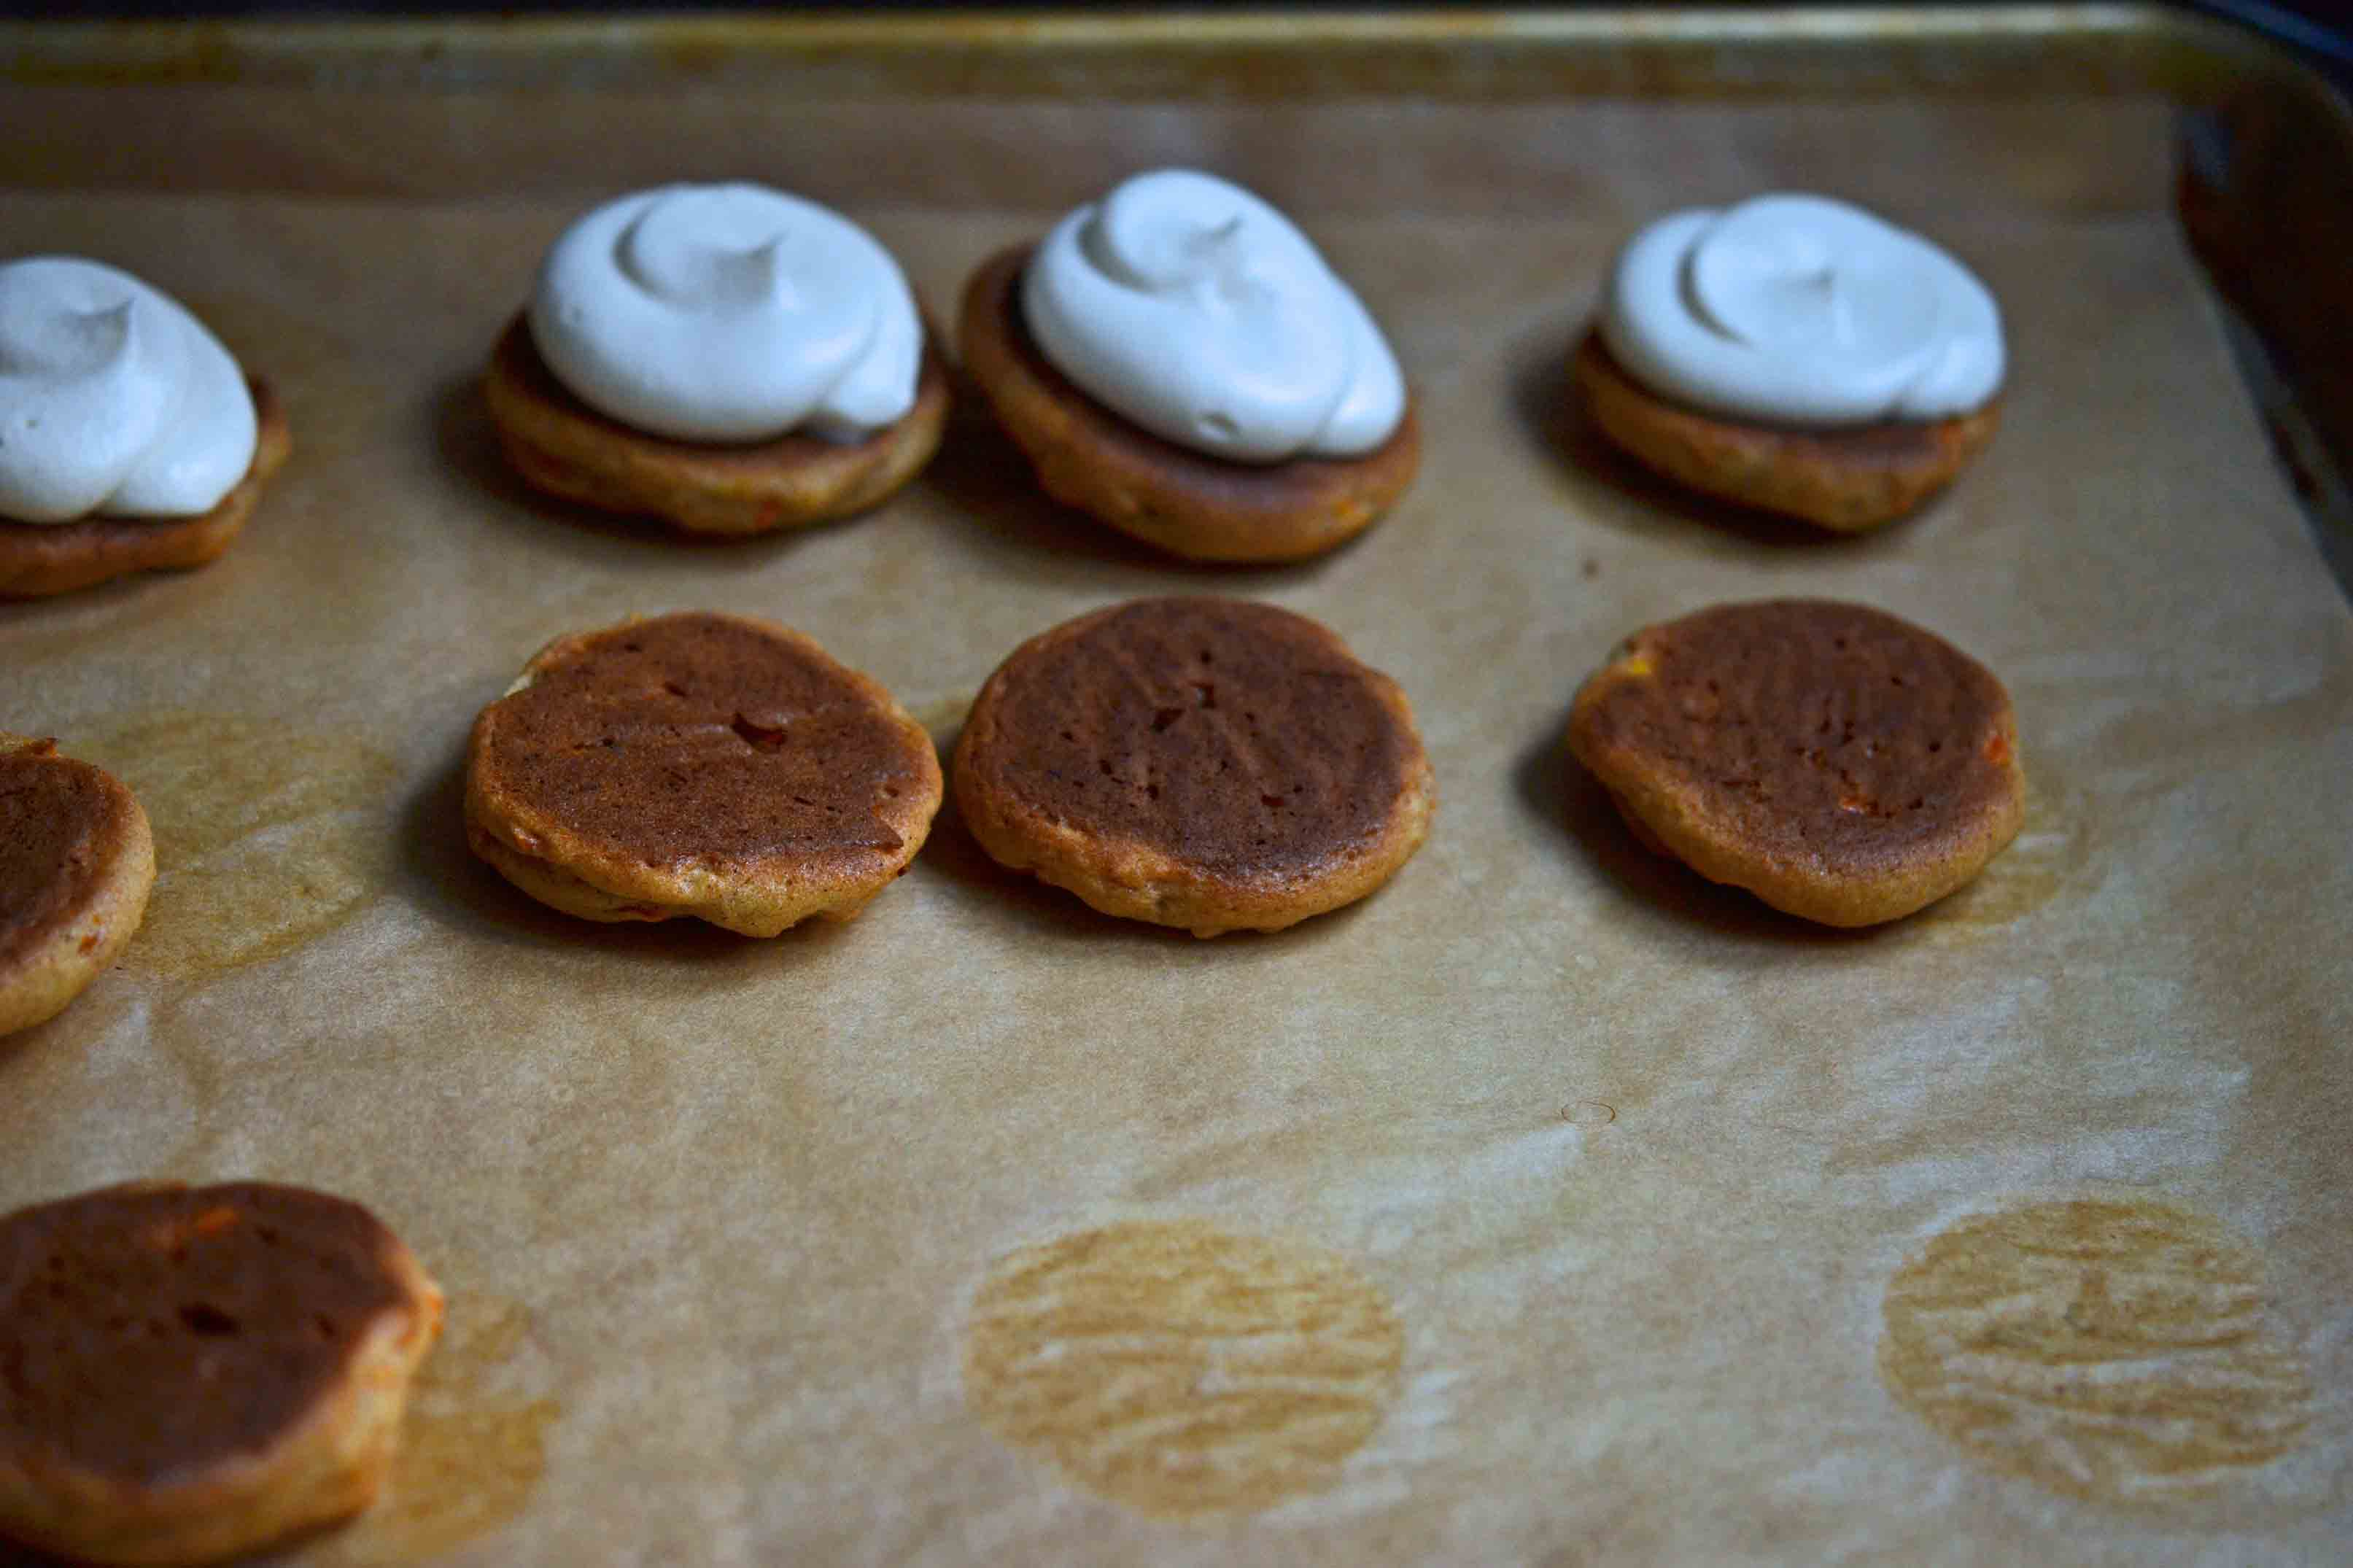 Gluten-Free Carrot Cake Whoopie Pies, Cream Cheese Filling